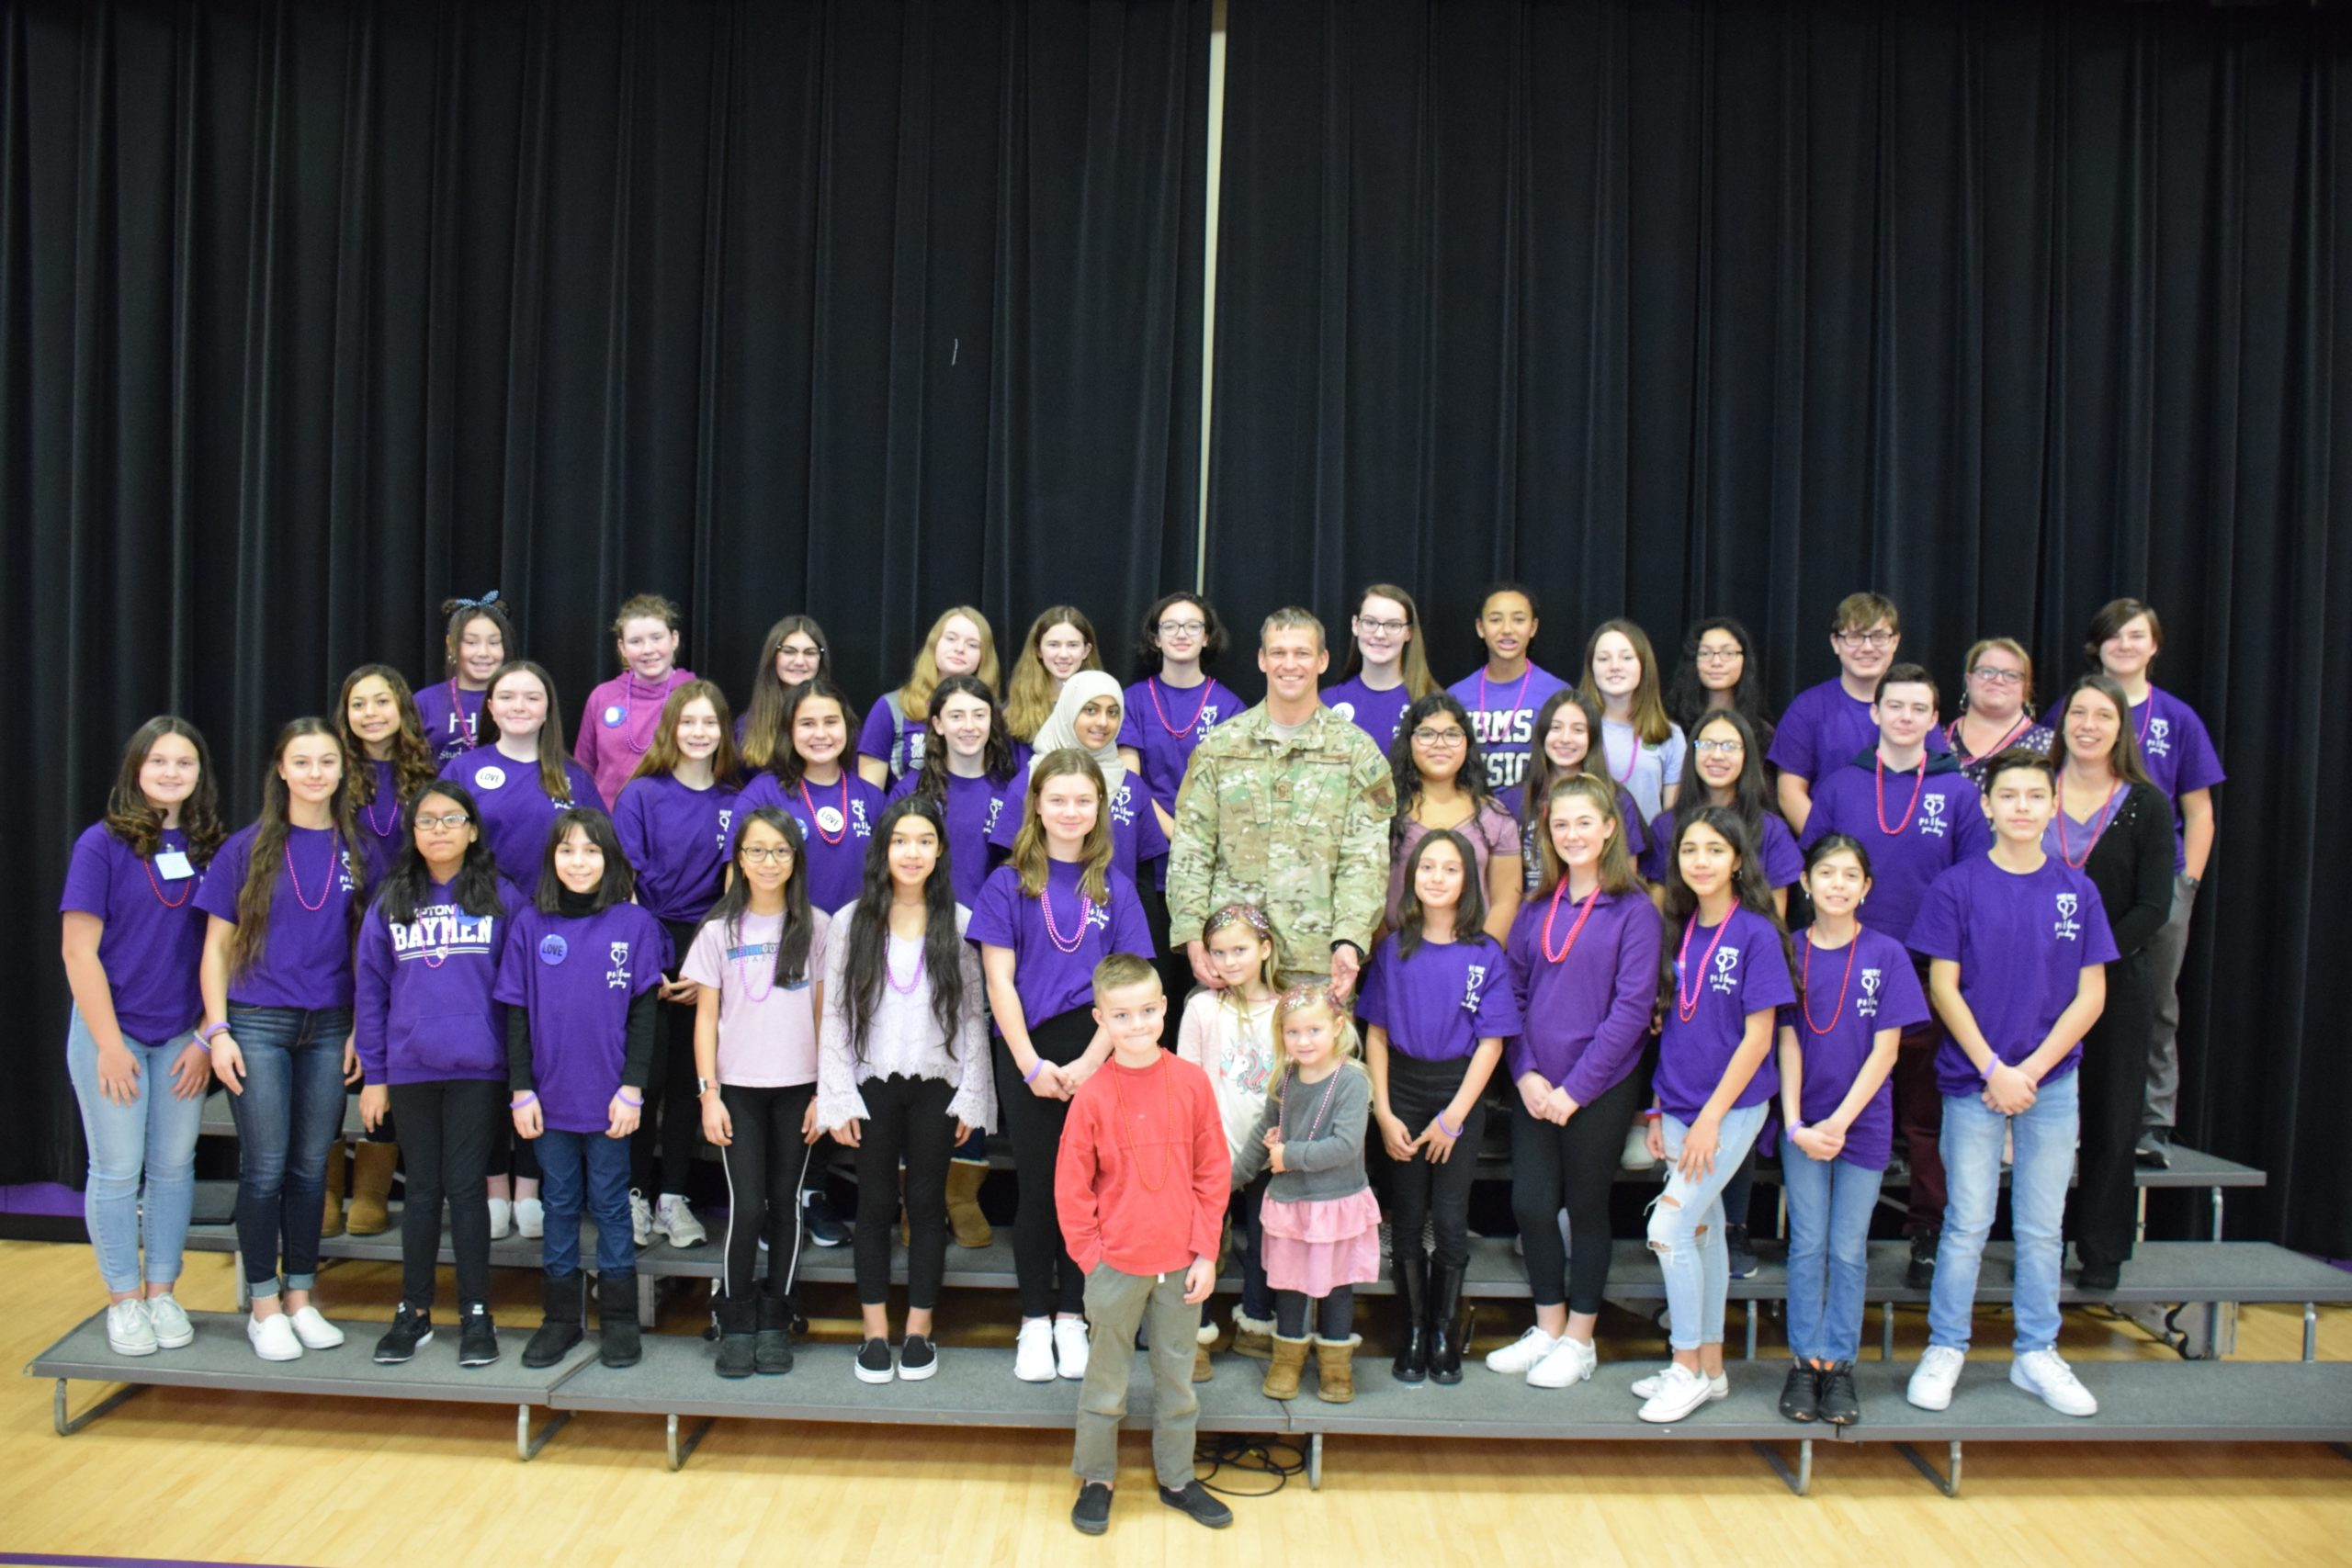 Hampton Bays High School students honored Senior Master Sergeant Erik S. Blom during a flag ceremony on February 14. With him are his children, Ryder, Sydney and Taylor, surrounded by the school's chorus.